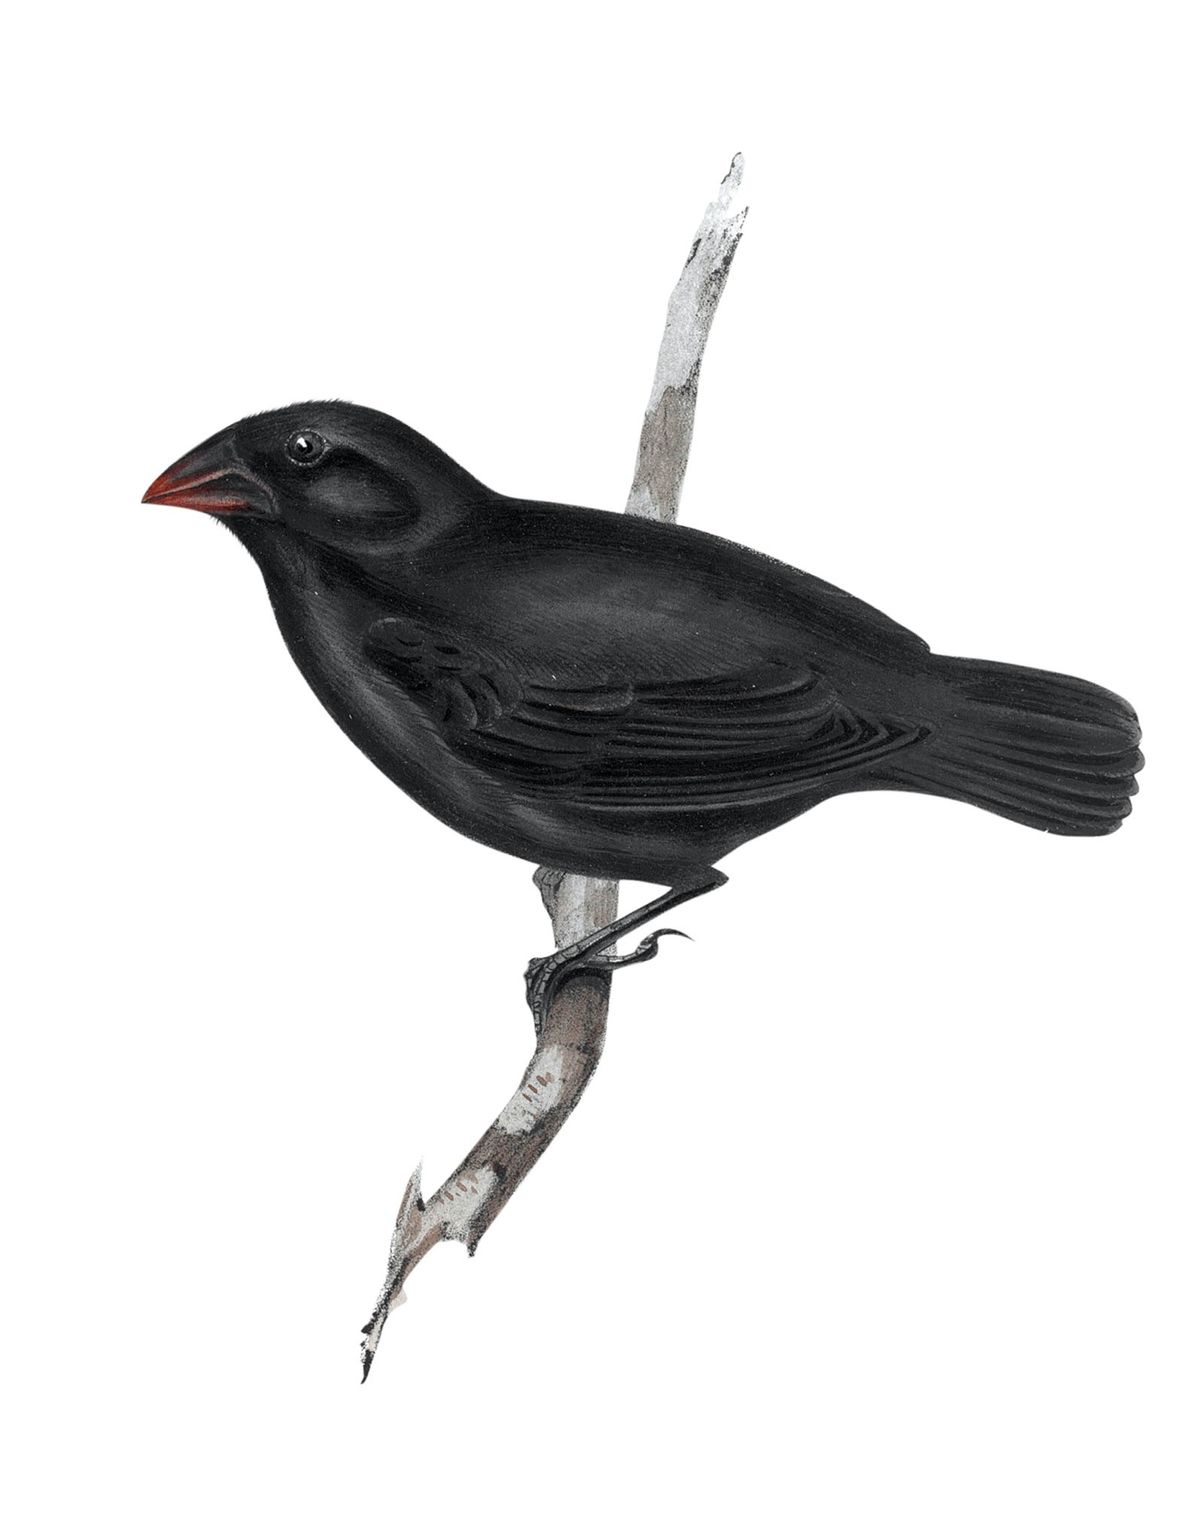 Medium ground finch (Geospiza fortis) observed in the Galápagos.